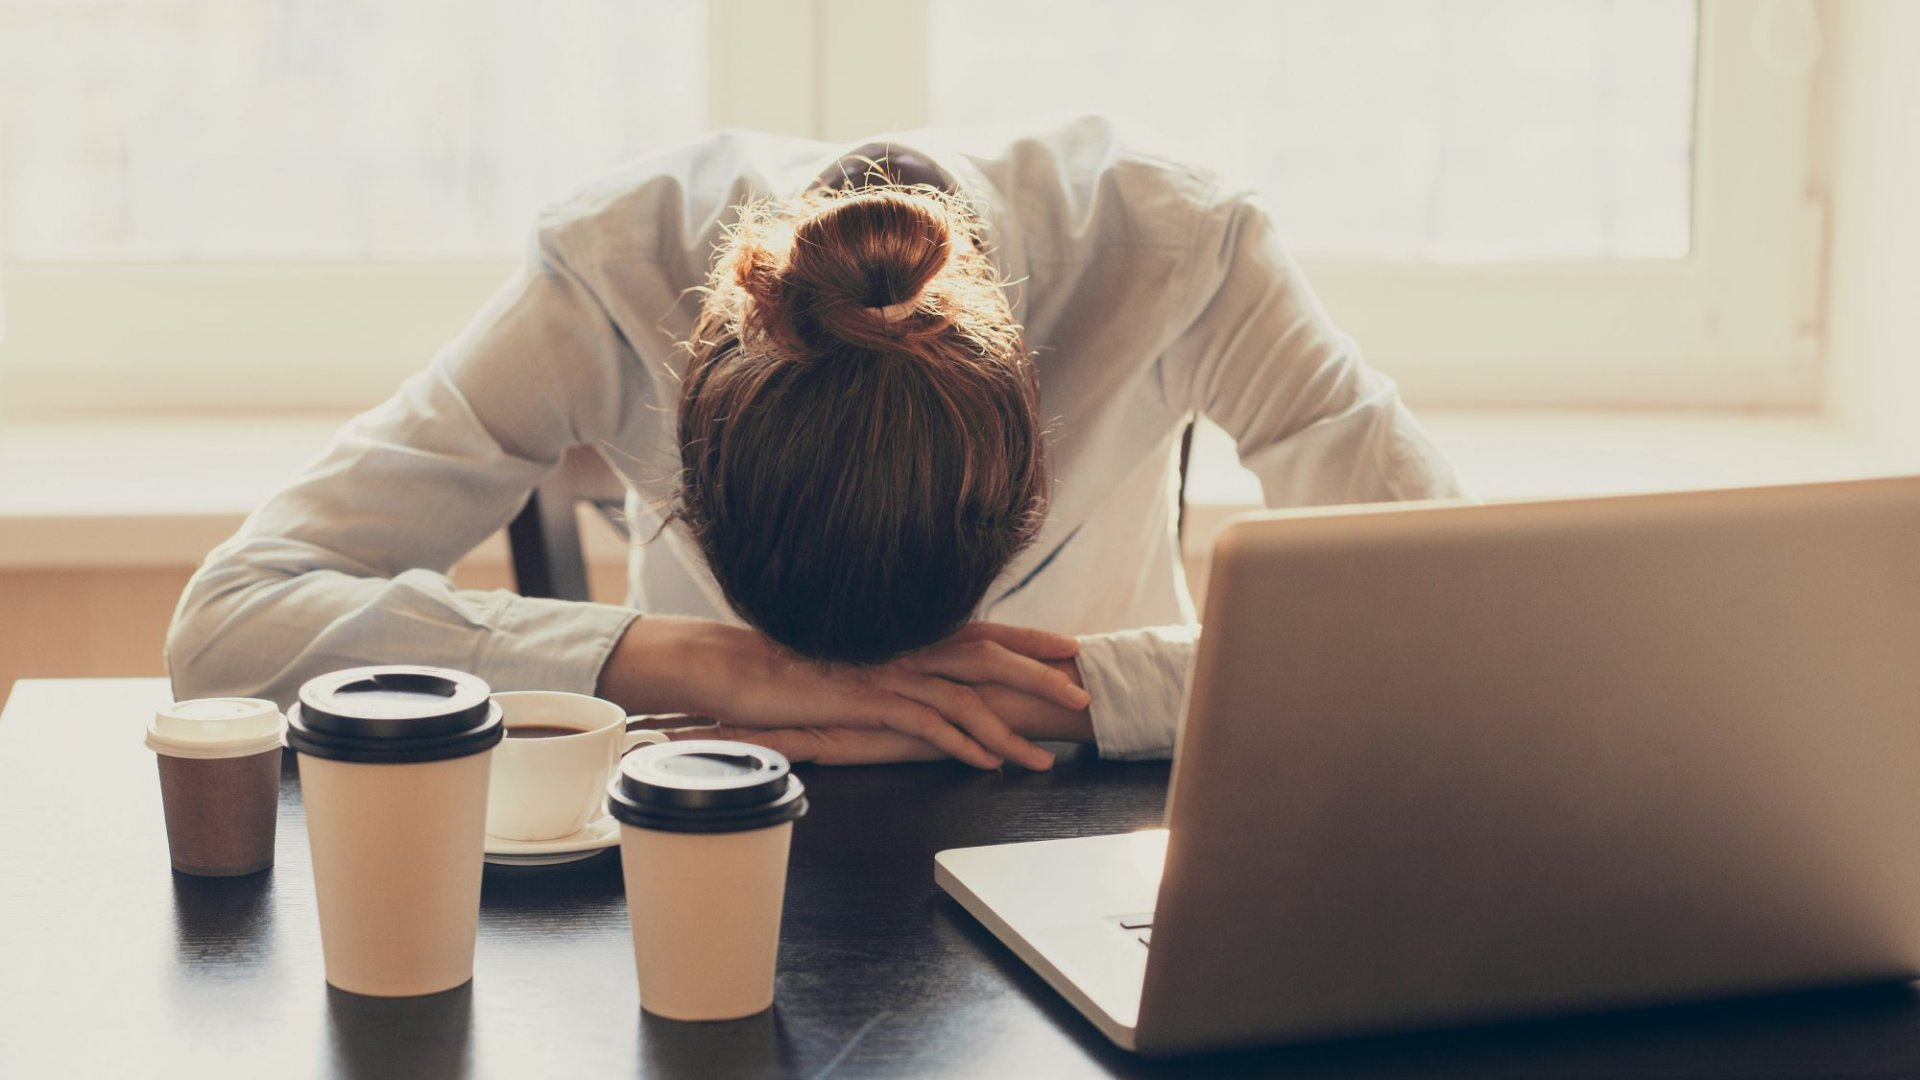 Stuck in a Losing Streak? There's One Important Rule You Need to Remember